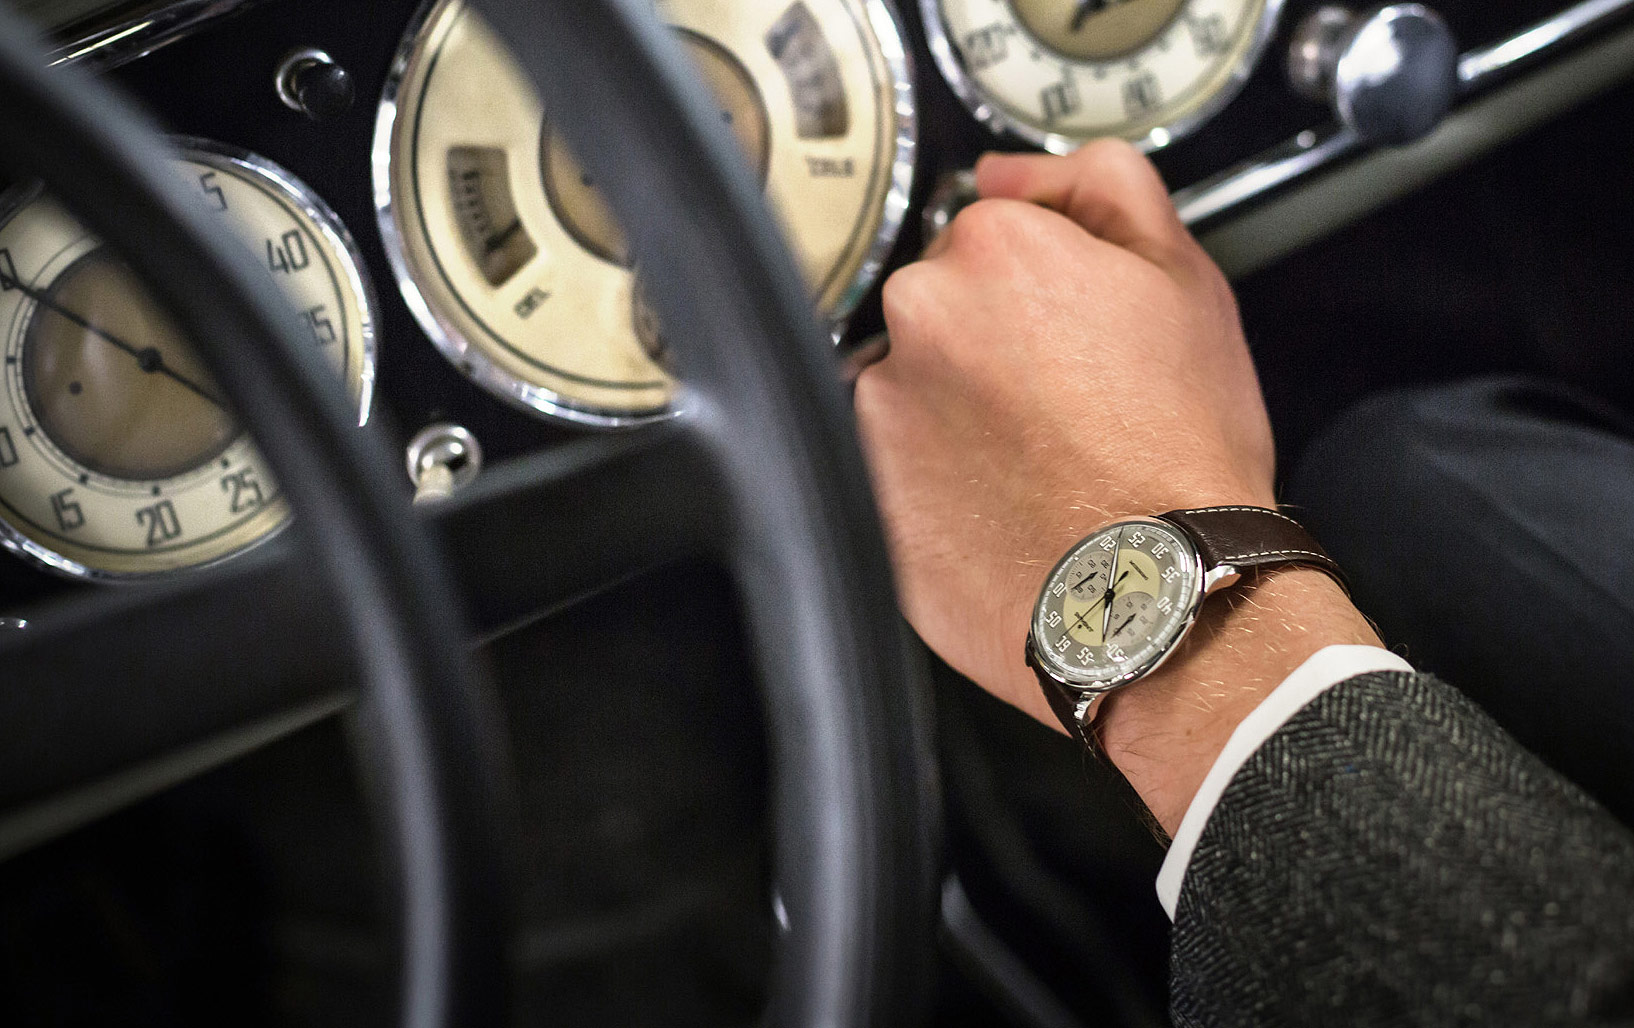 The Junghans Meister Driver Chronoscope: An expression of pure passion